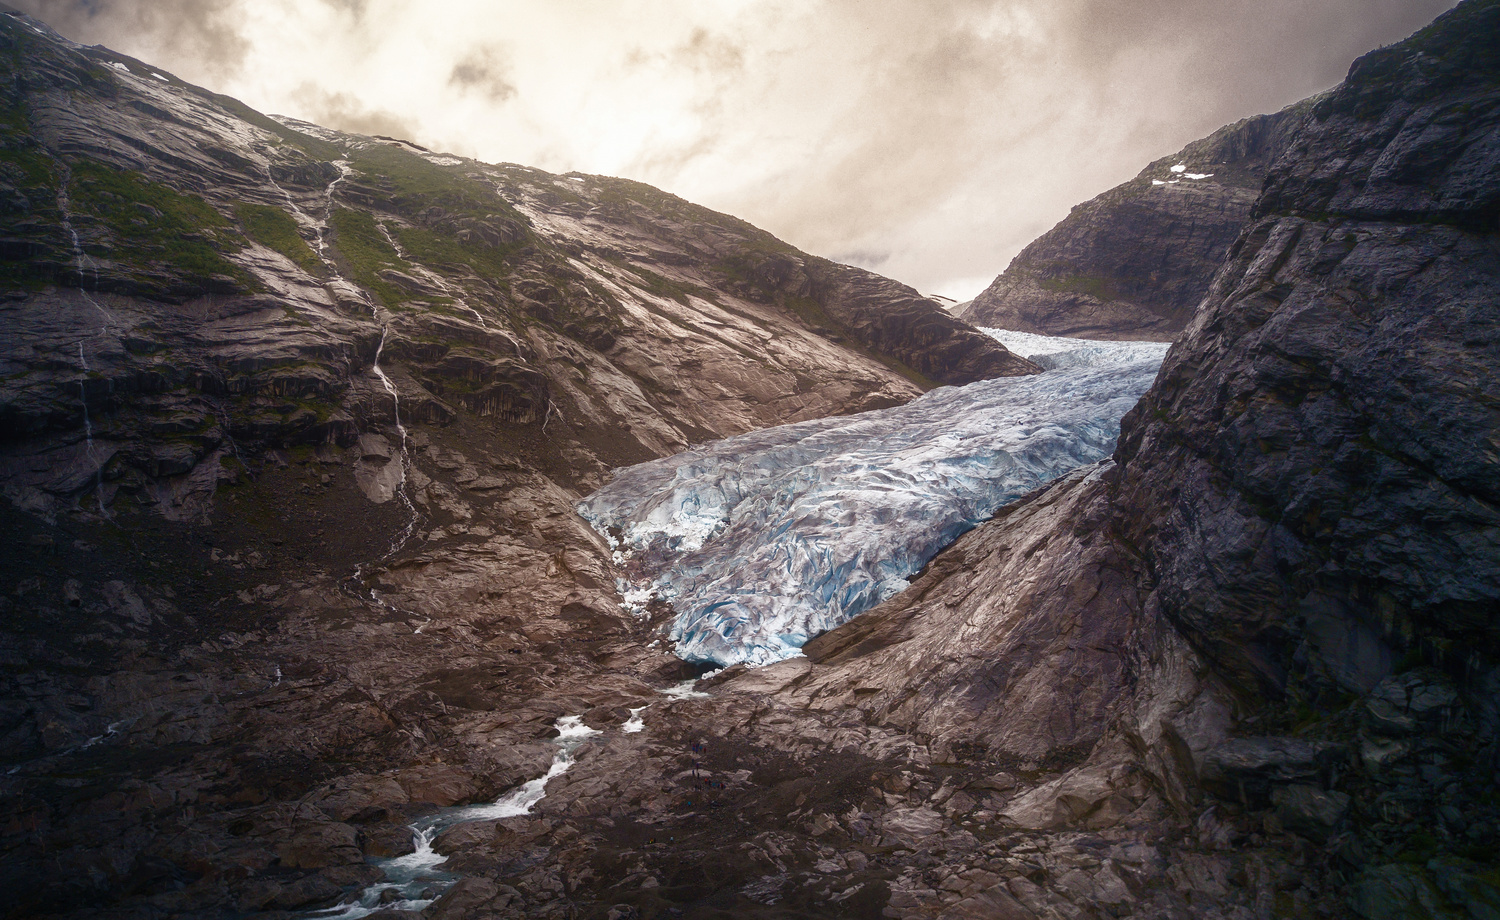 The tongue of the Jostedalsbreen Glacier, Norway by DaniGviews /Daniel